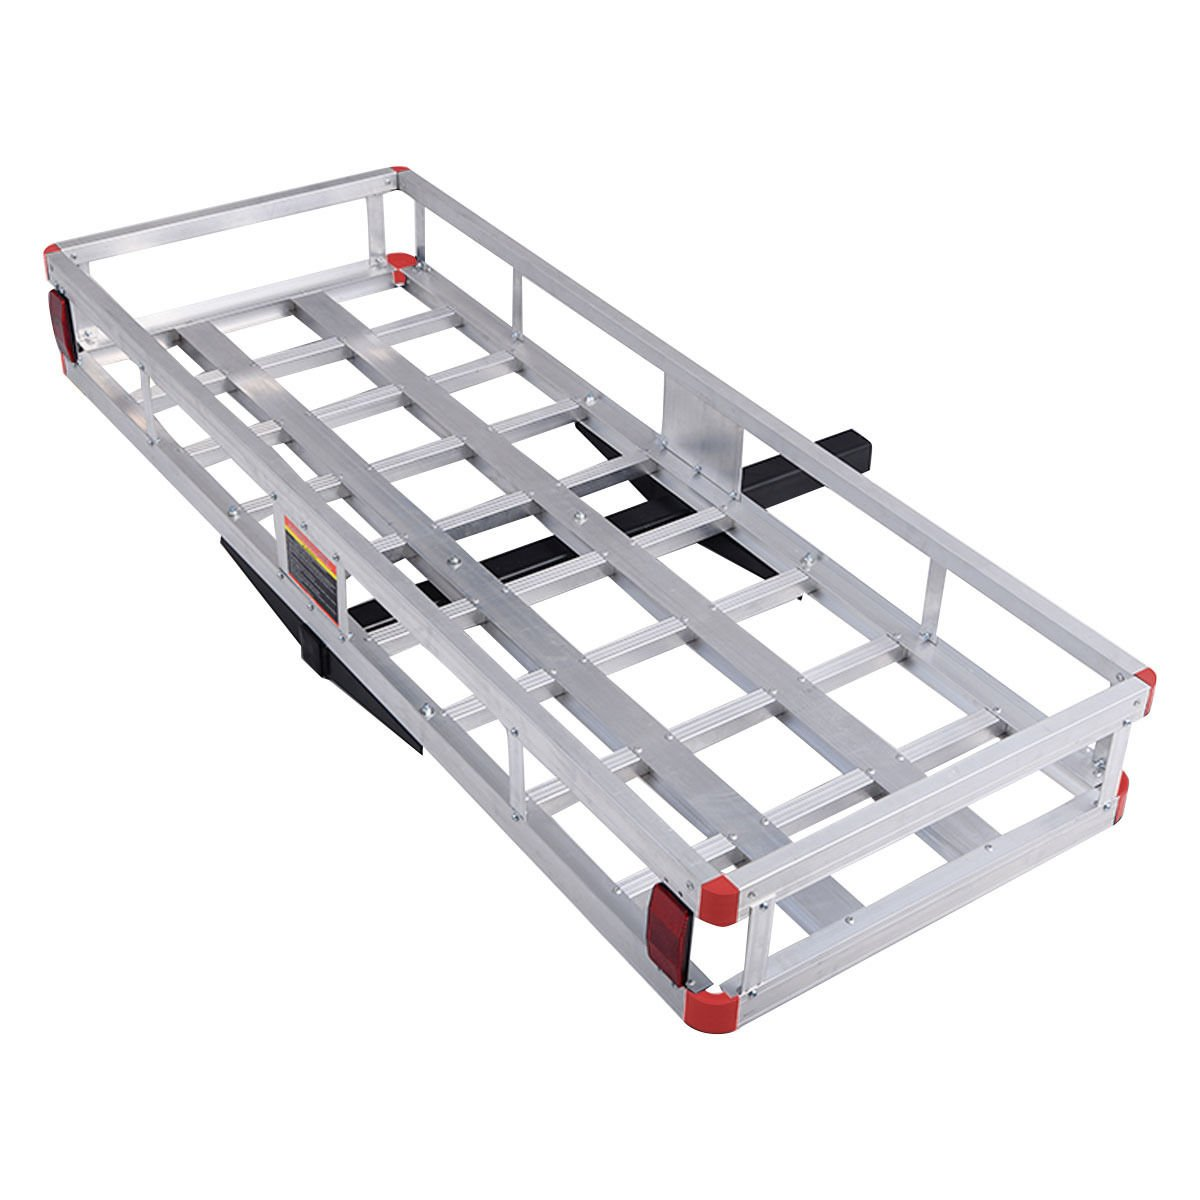 Goplus 60'' x 25'' Aluminum Hitch Mount Cargo Carrier Luggage Basket Rack for SUV, Truck, Car, 500LBS